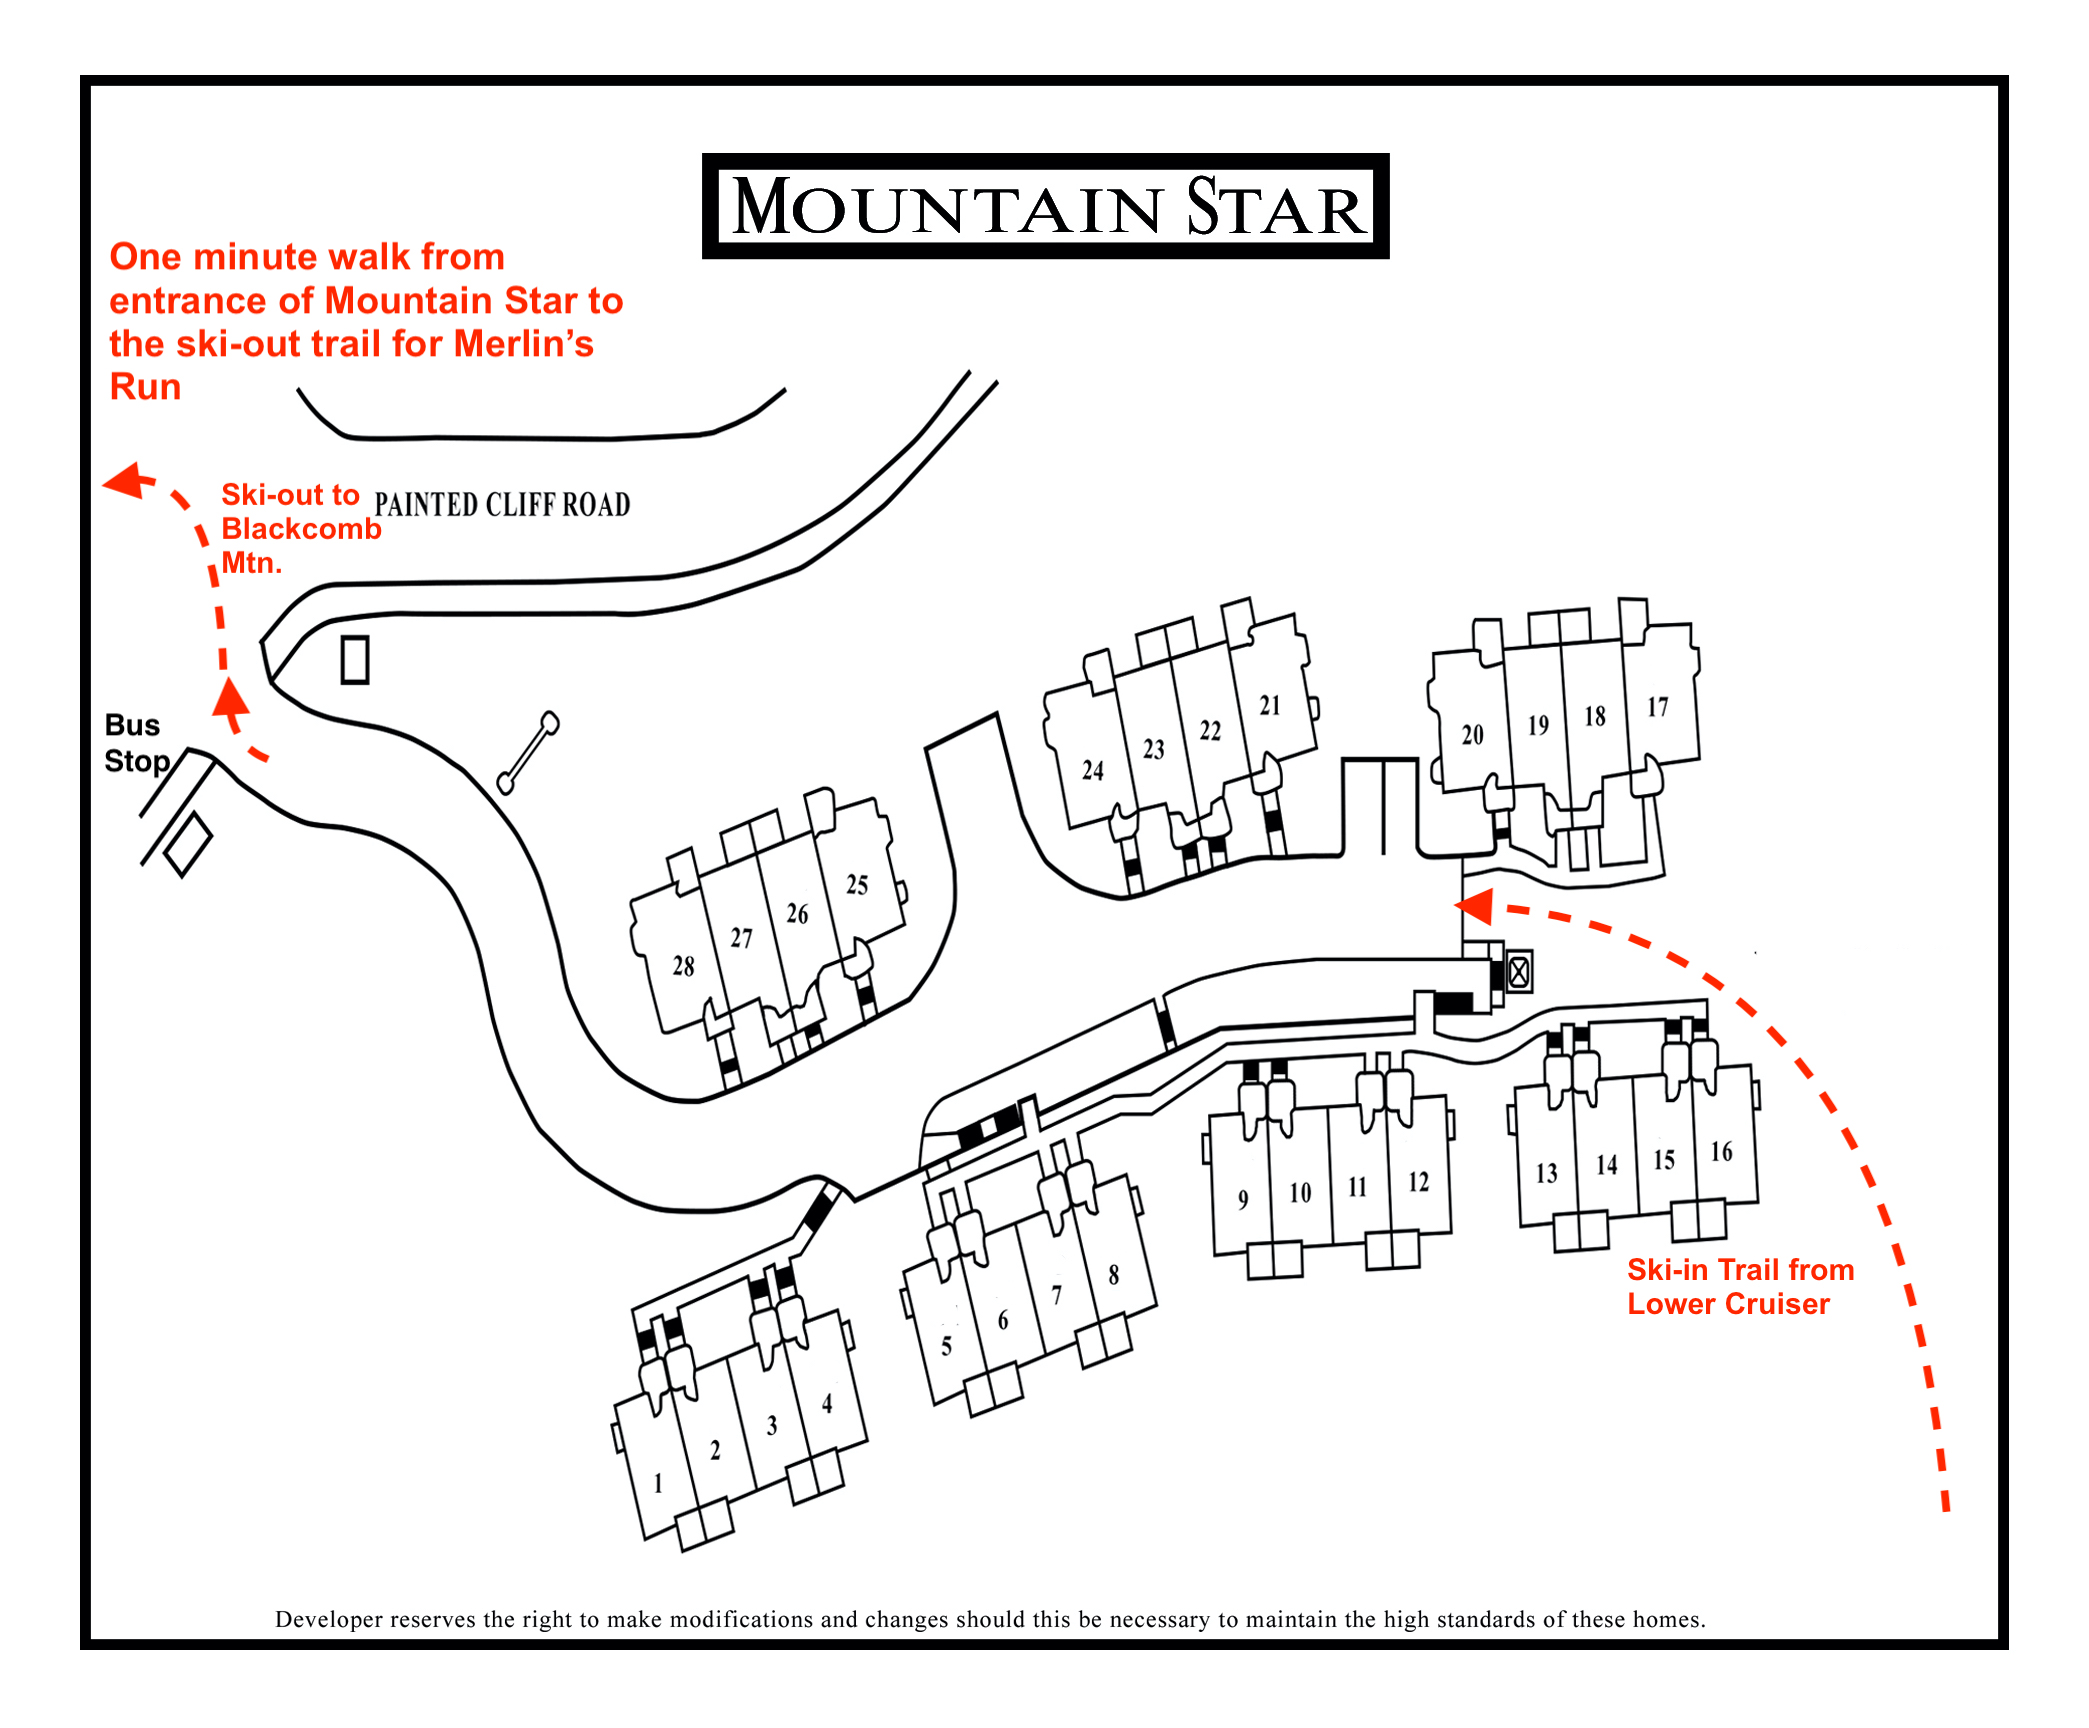 Mountain Star Site plan with ski-in ski-out trail marked